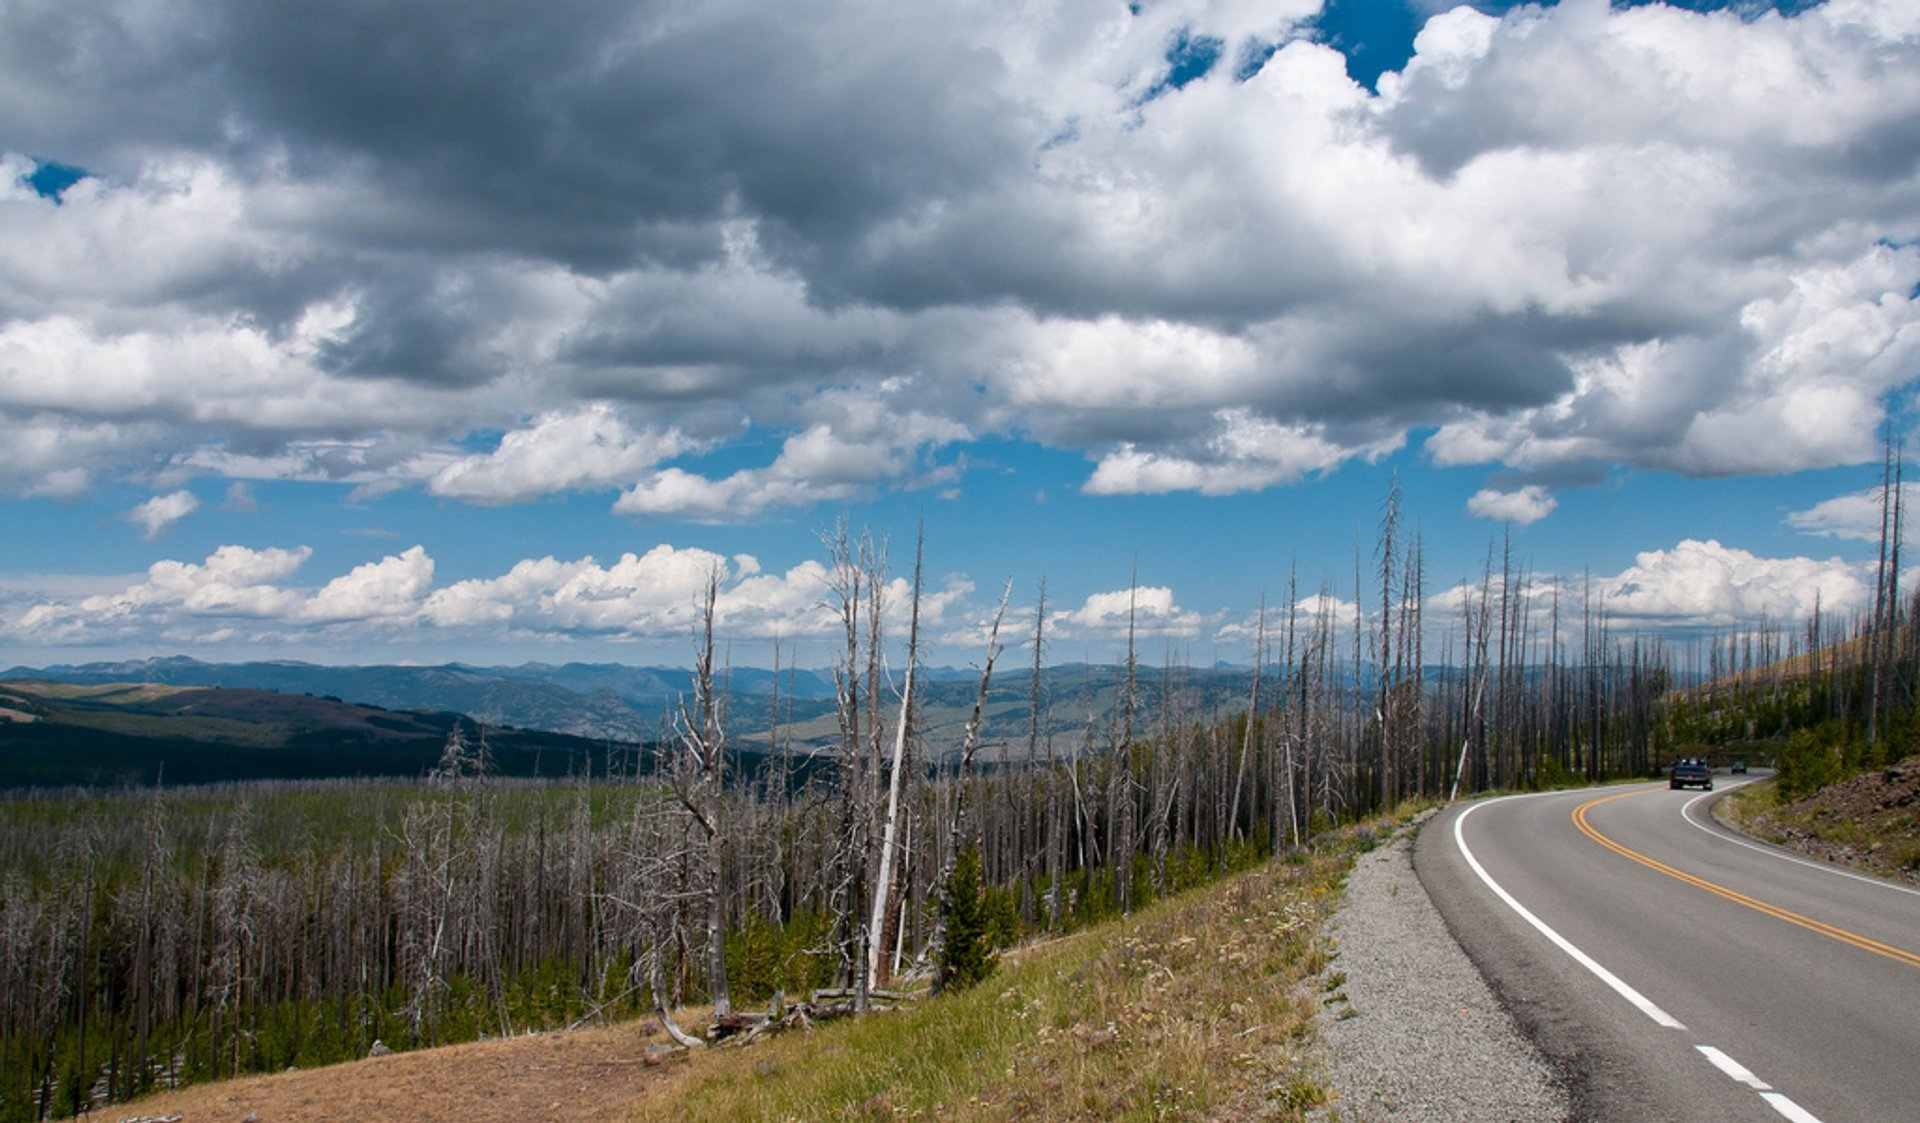 Dunraven Pass in Yellowstone National Park 2020 - Best Time